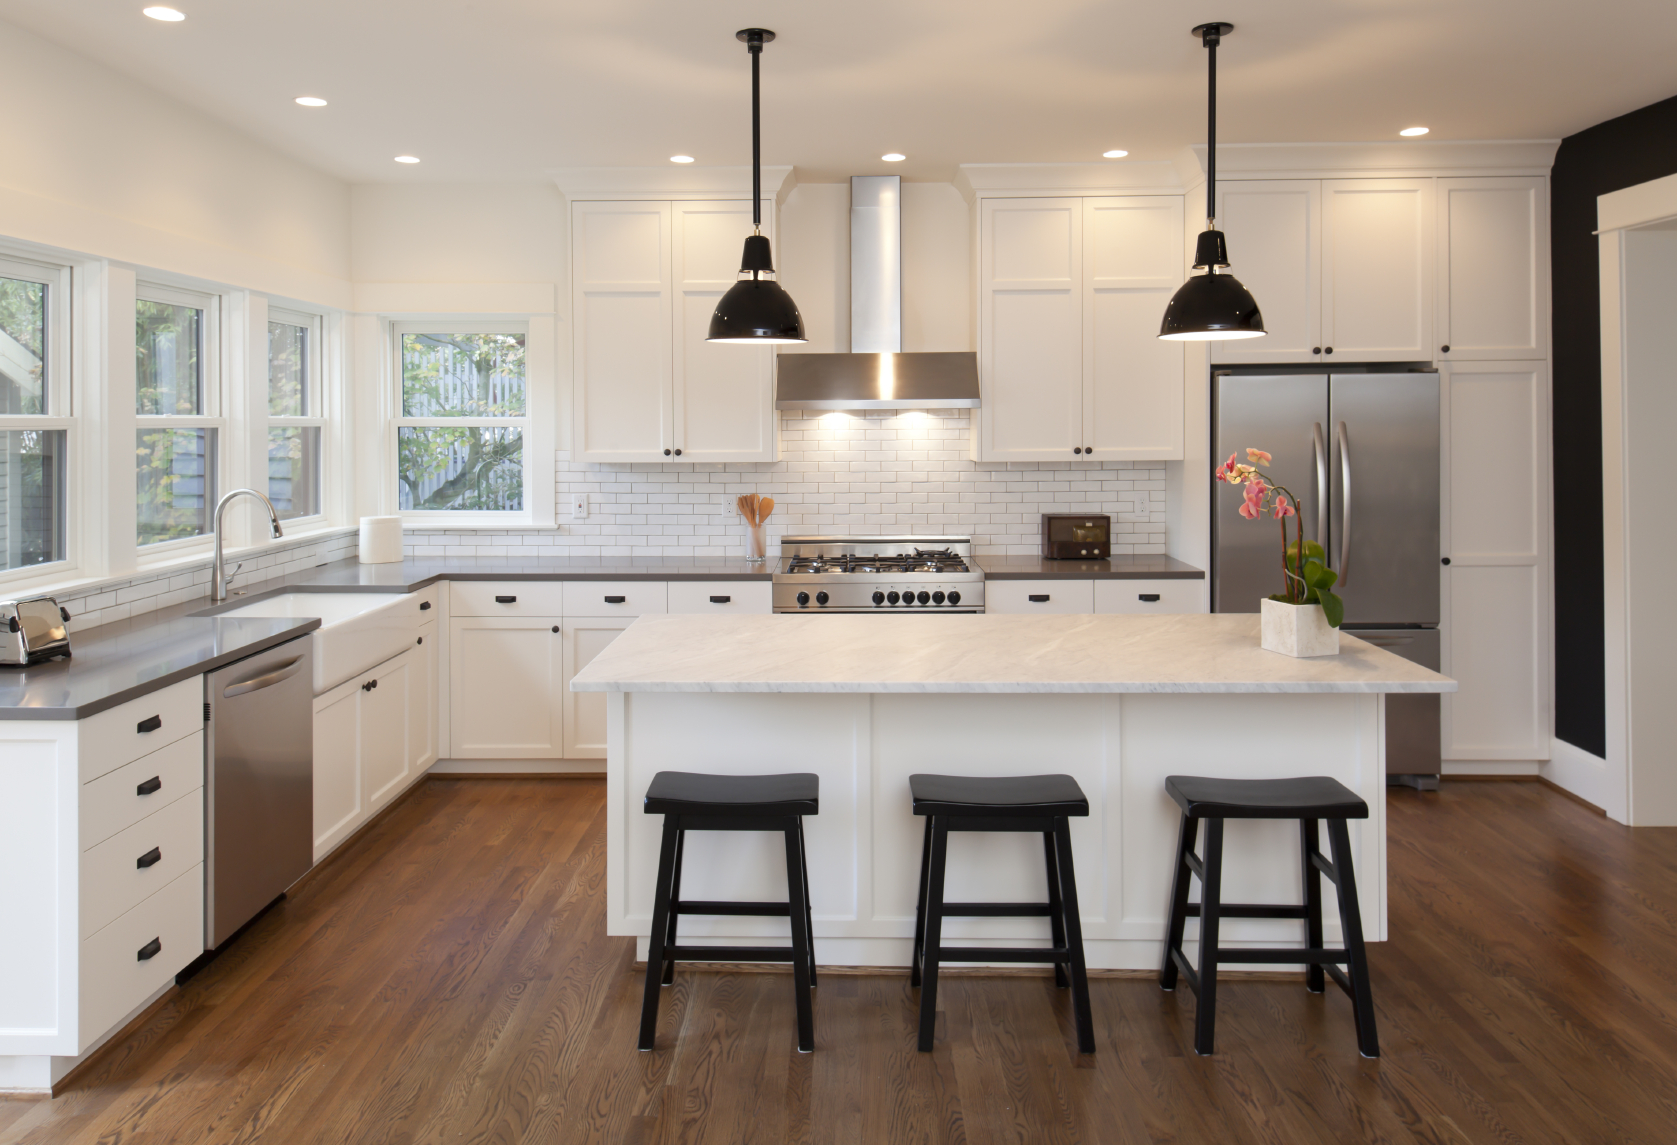 how to design a kitchen renovation the dos and don ts of kitchen remodeling huffpost 572